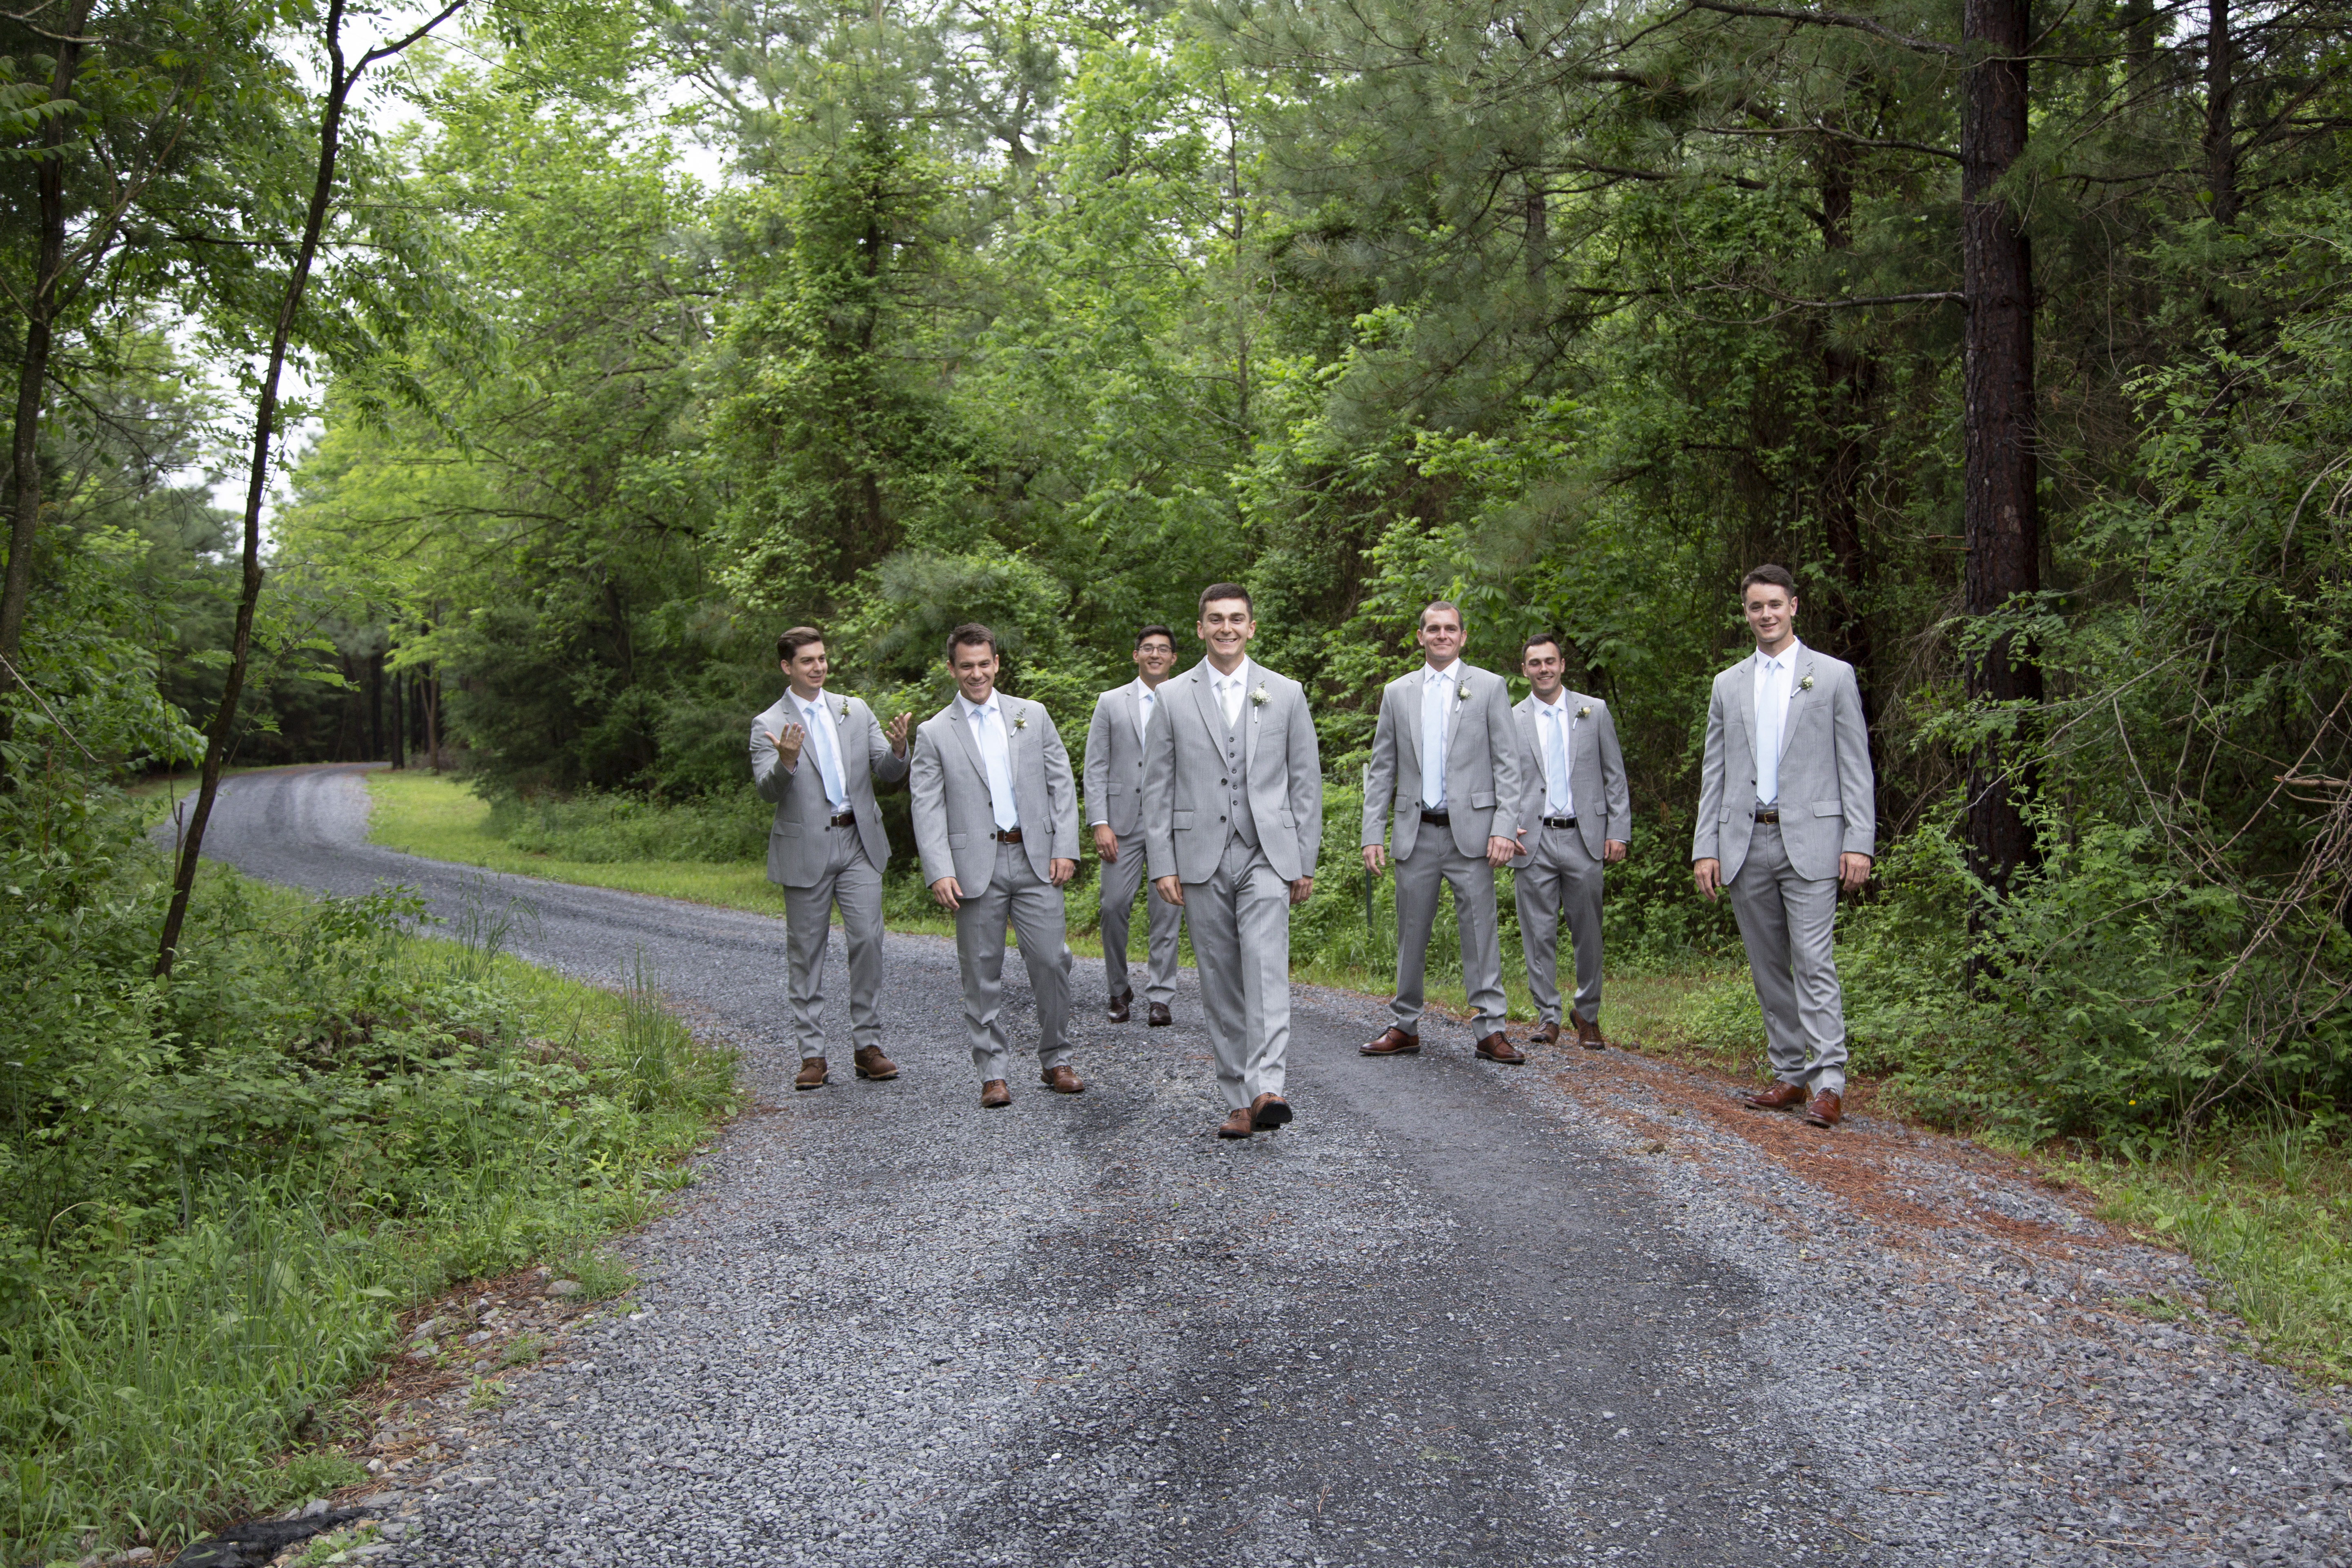 groom and groomsman walking down gravel road in grey suits